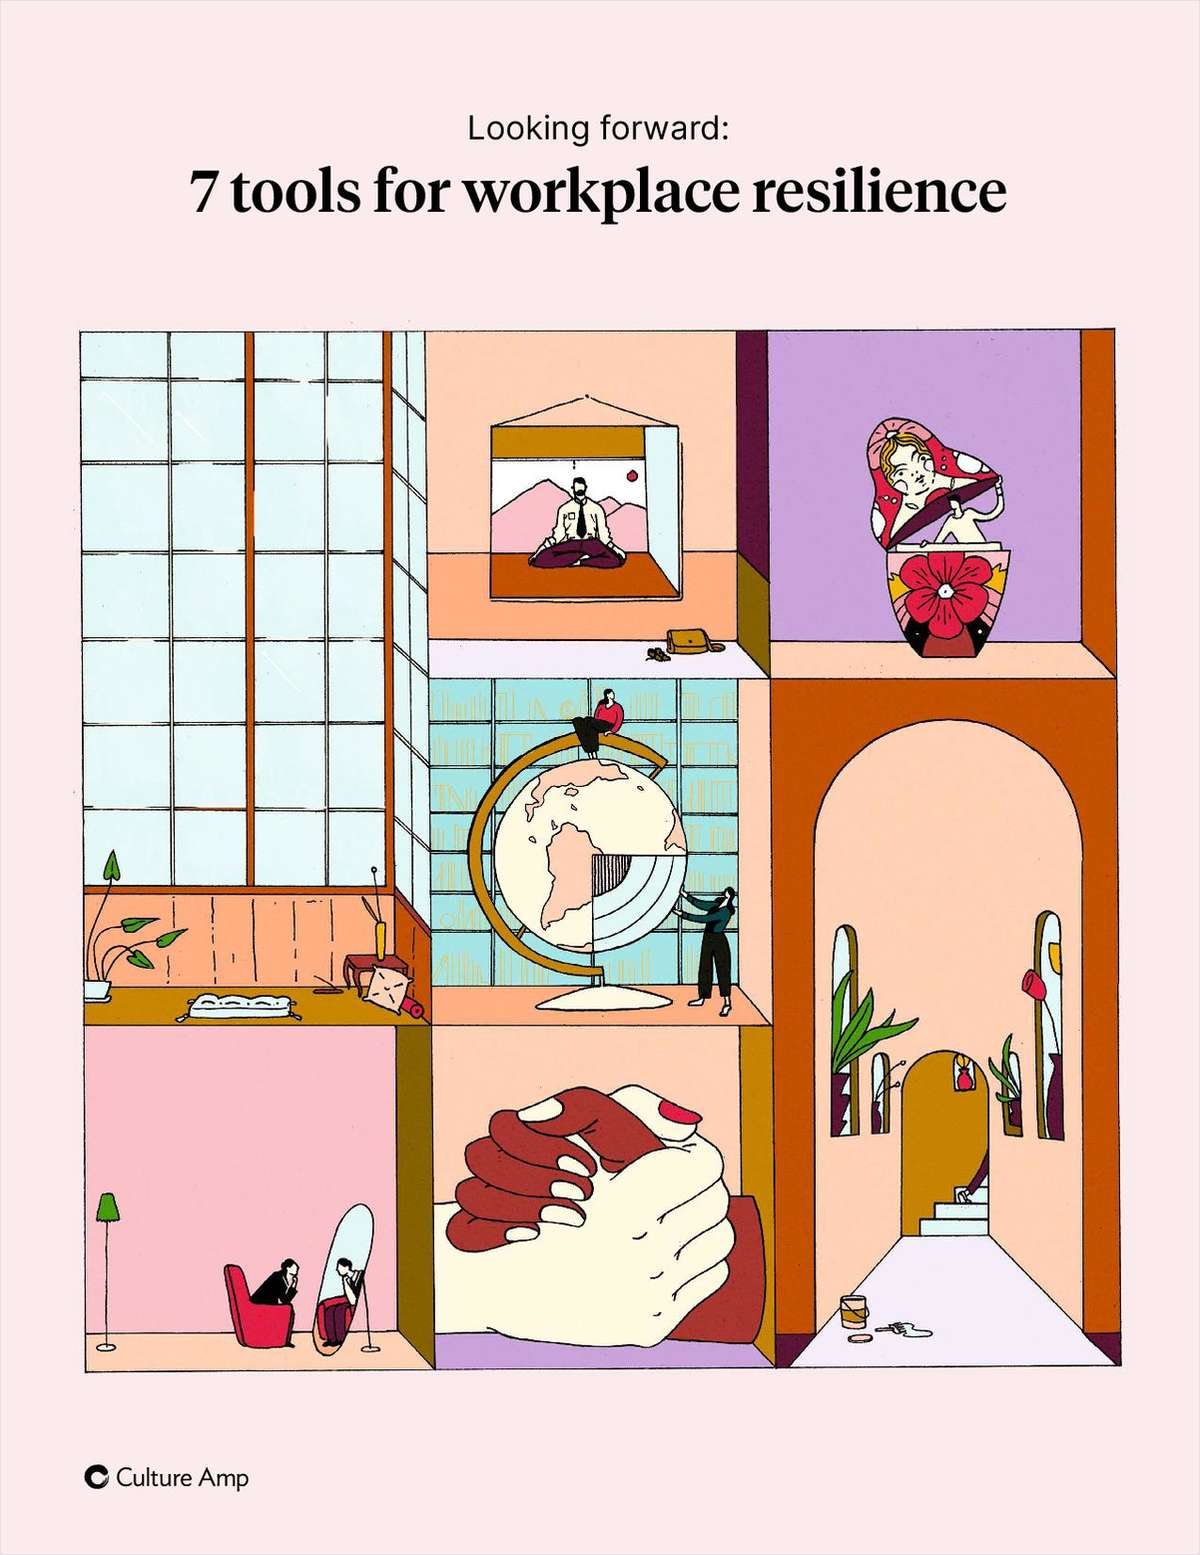 Looking forward: 7 tools for workplace resilience